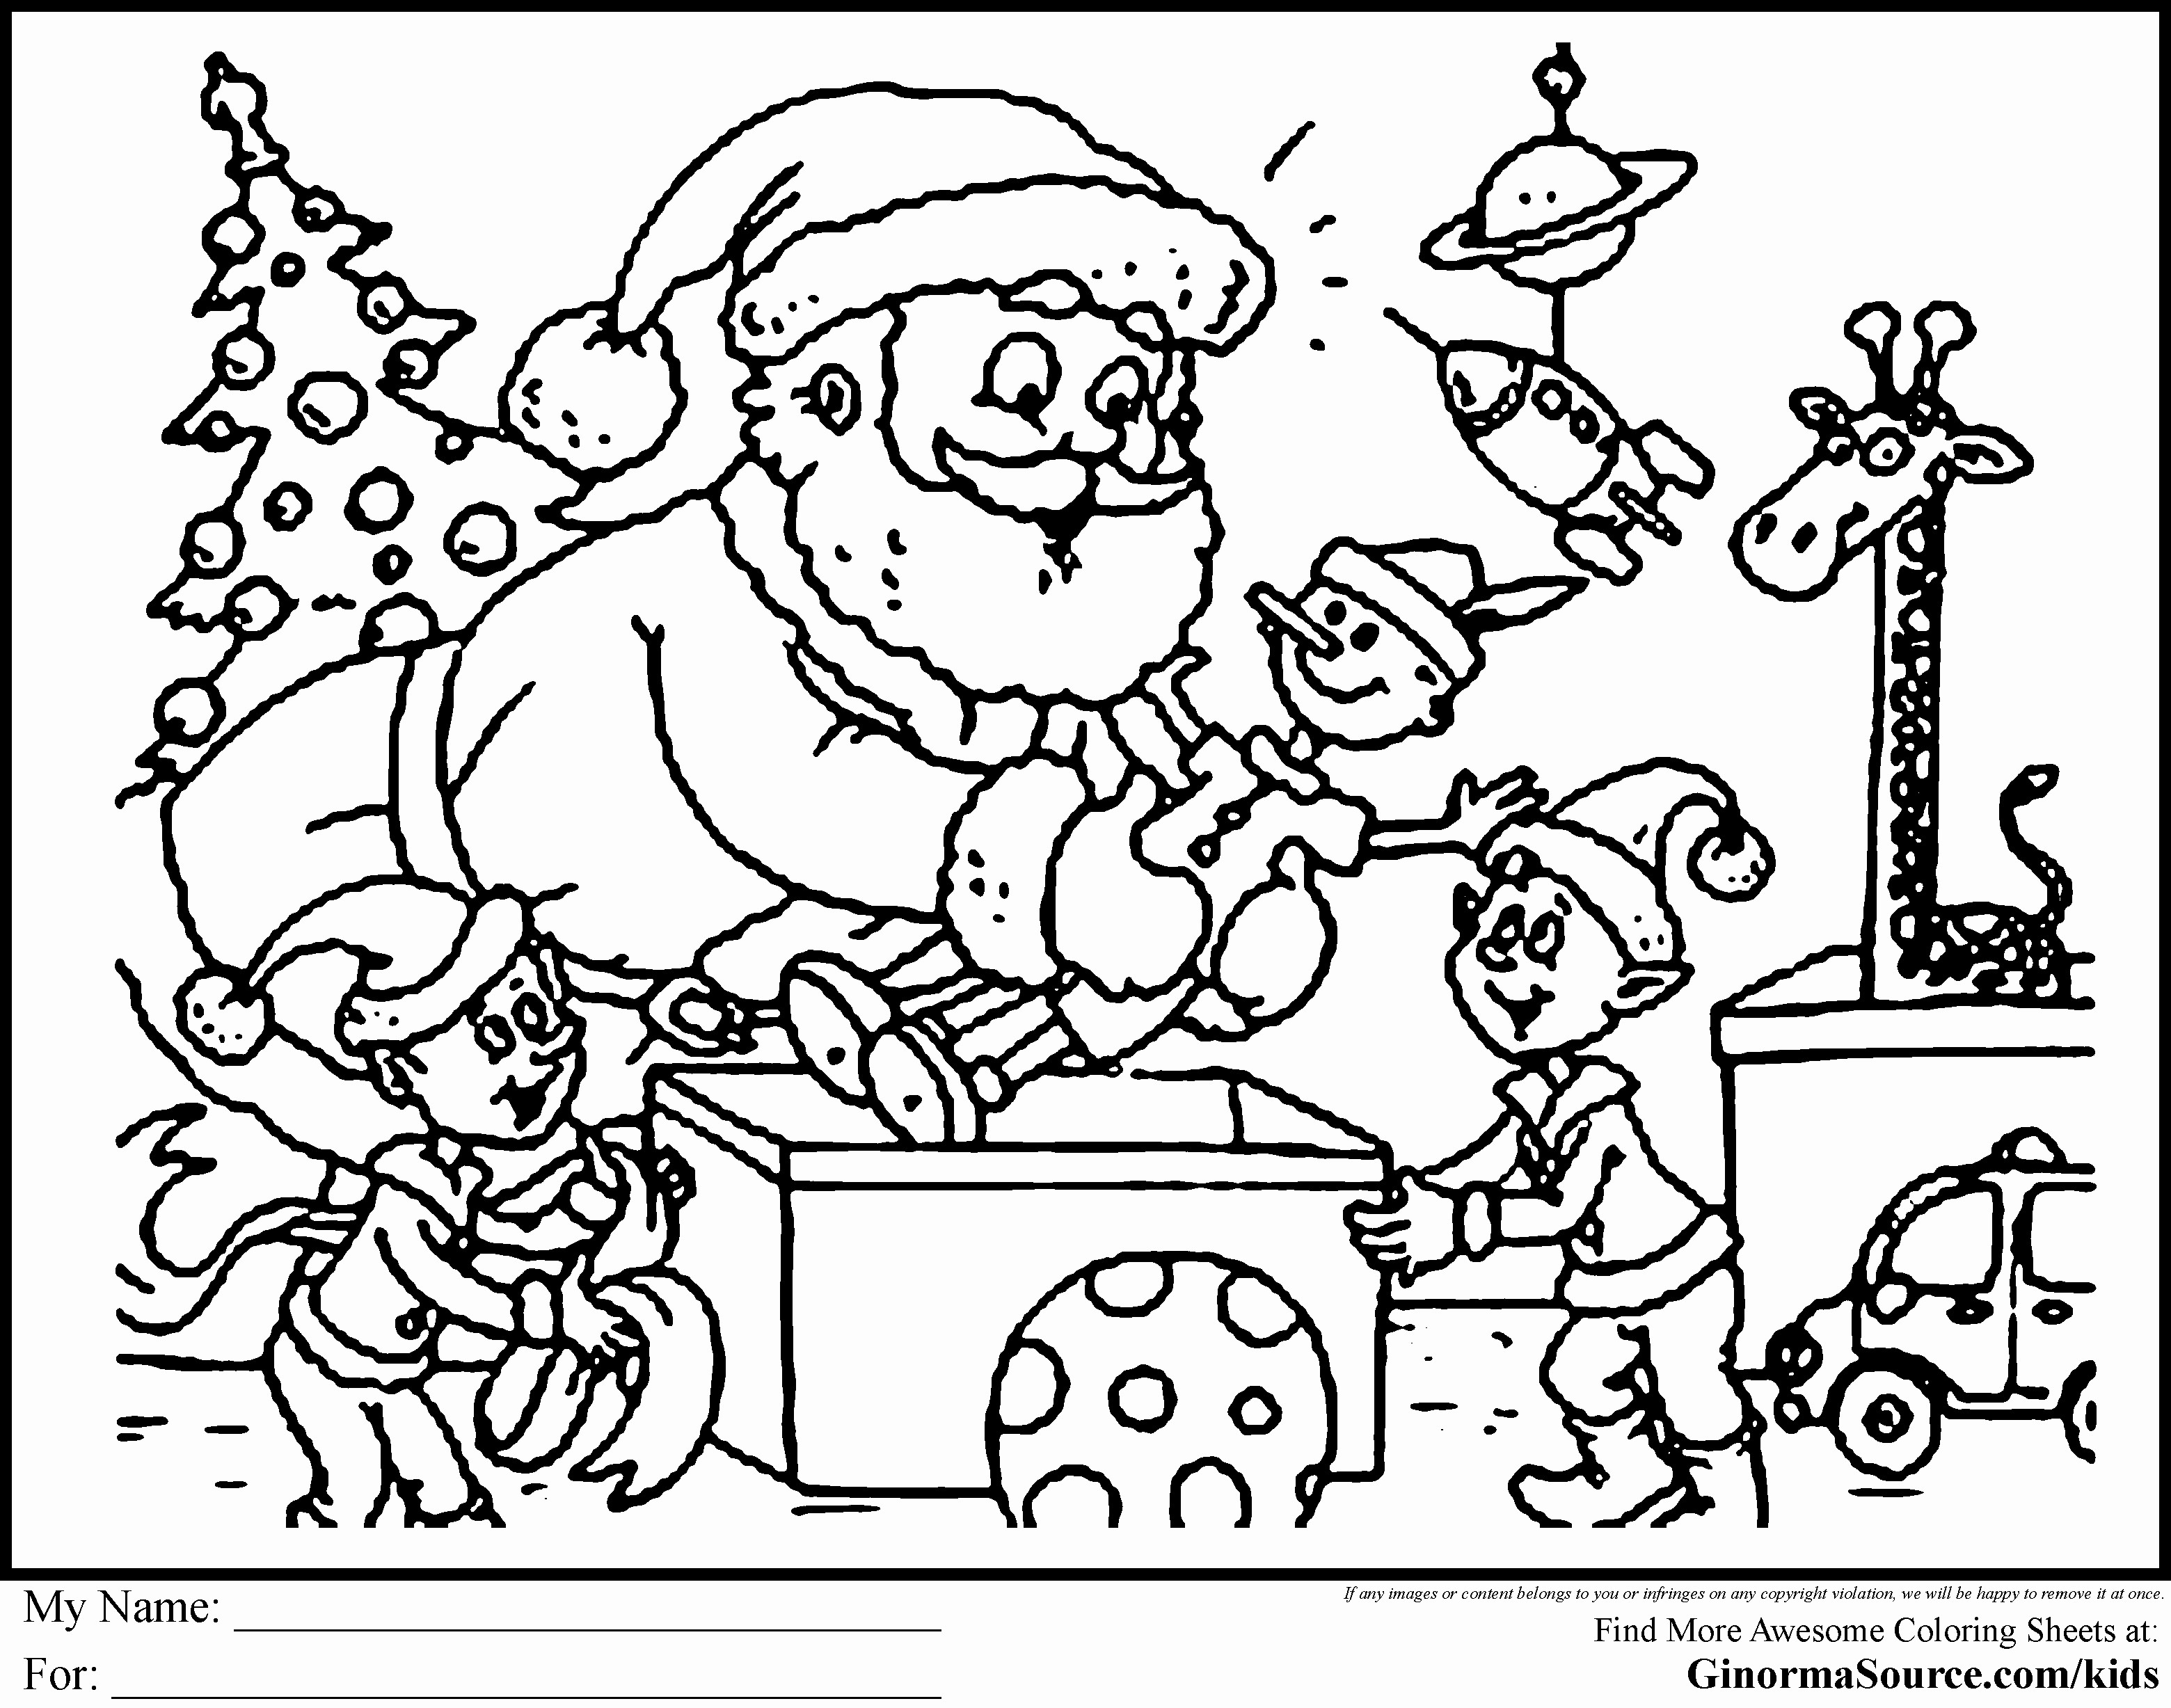 Coloring Ideas : Christmas Coloring For Kids Pages Religious Color - Free Printable Christmas Coloring Pages For Kids